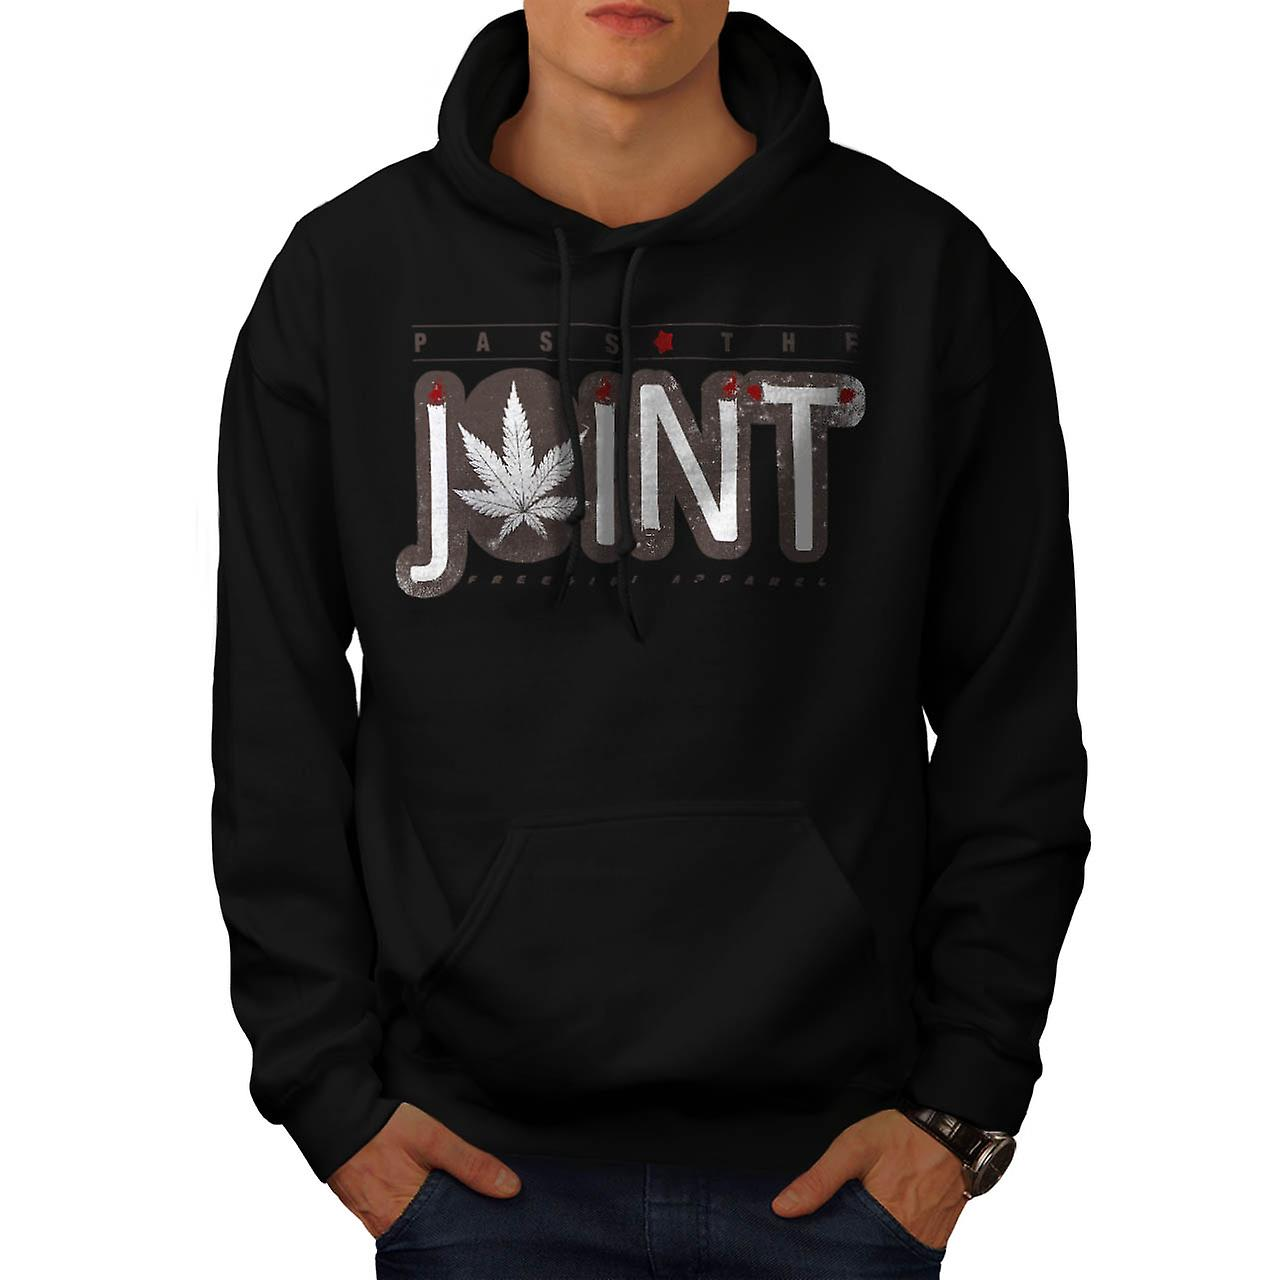 Burner Pass The Joint Smoke Weed Men Black Hoodie | Wellcoda